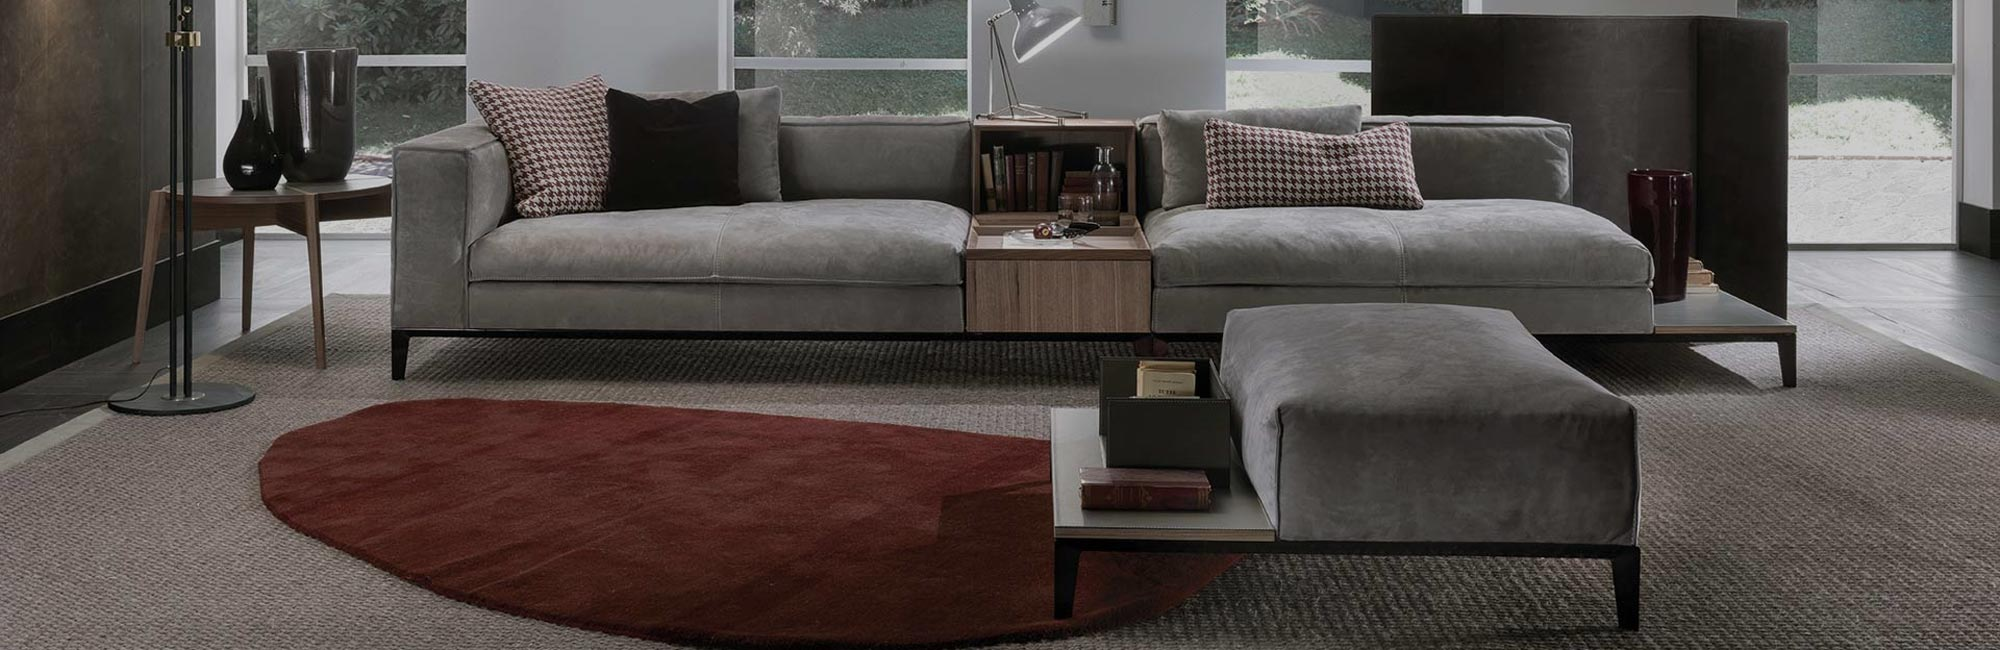 Frigerio Furniture